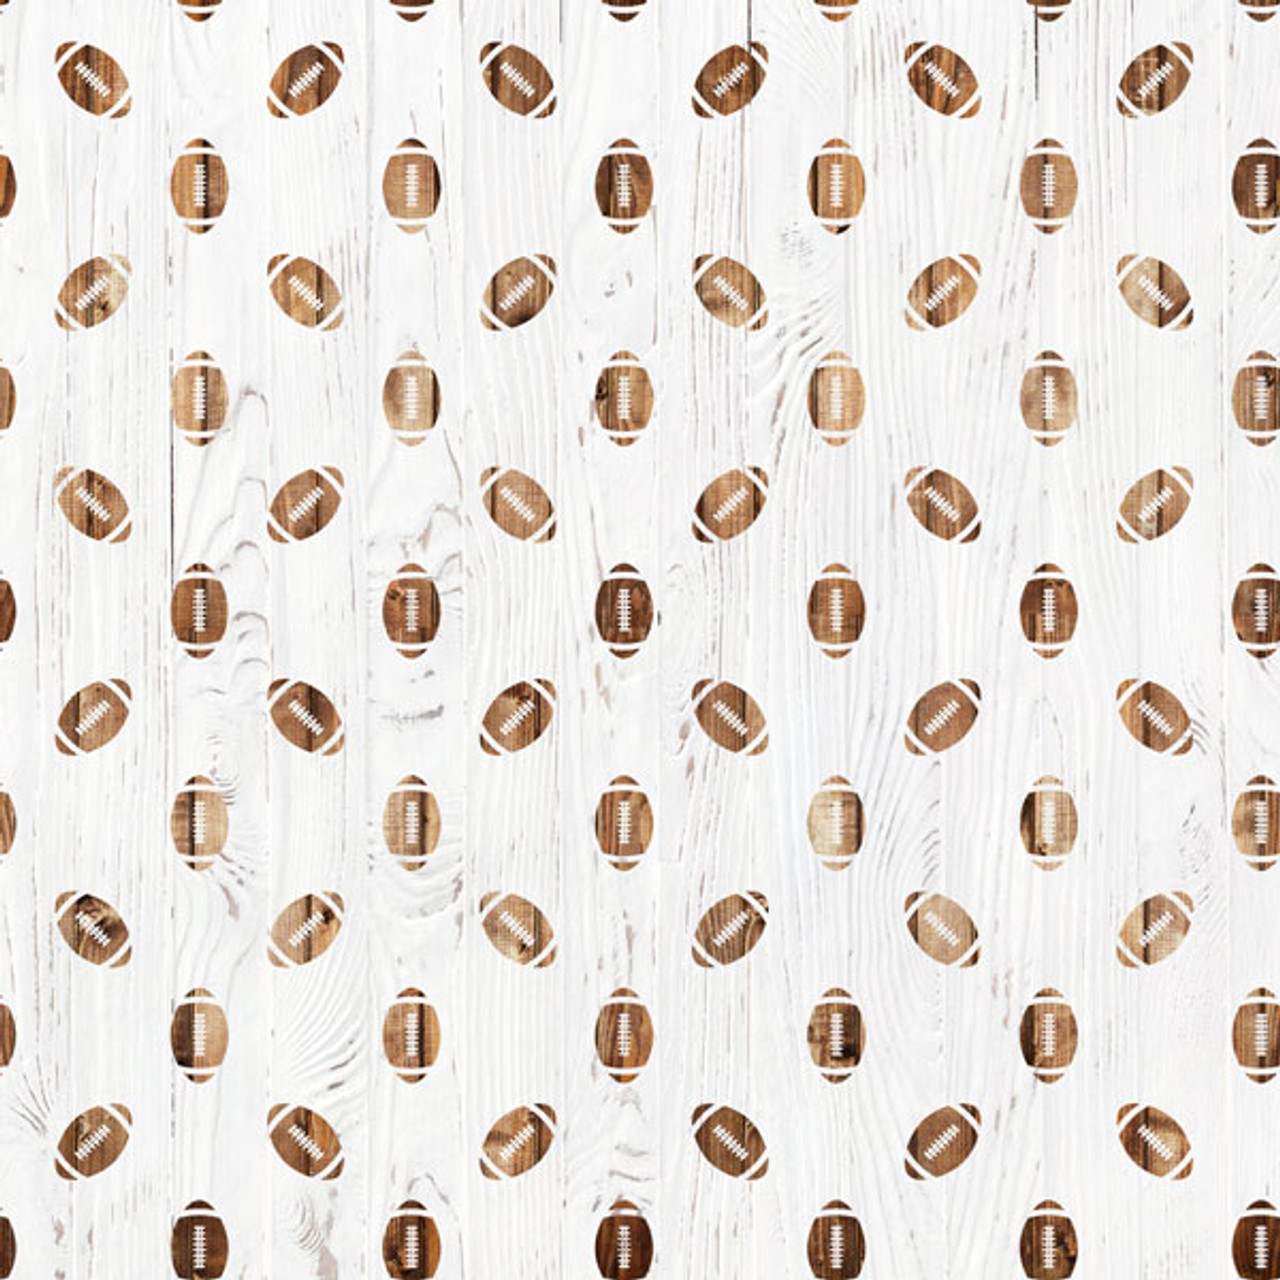 Wood Sports Collection Football White Wood 12 x 12 Double-Sided Scrapbook Paper by Scrapbook Customs